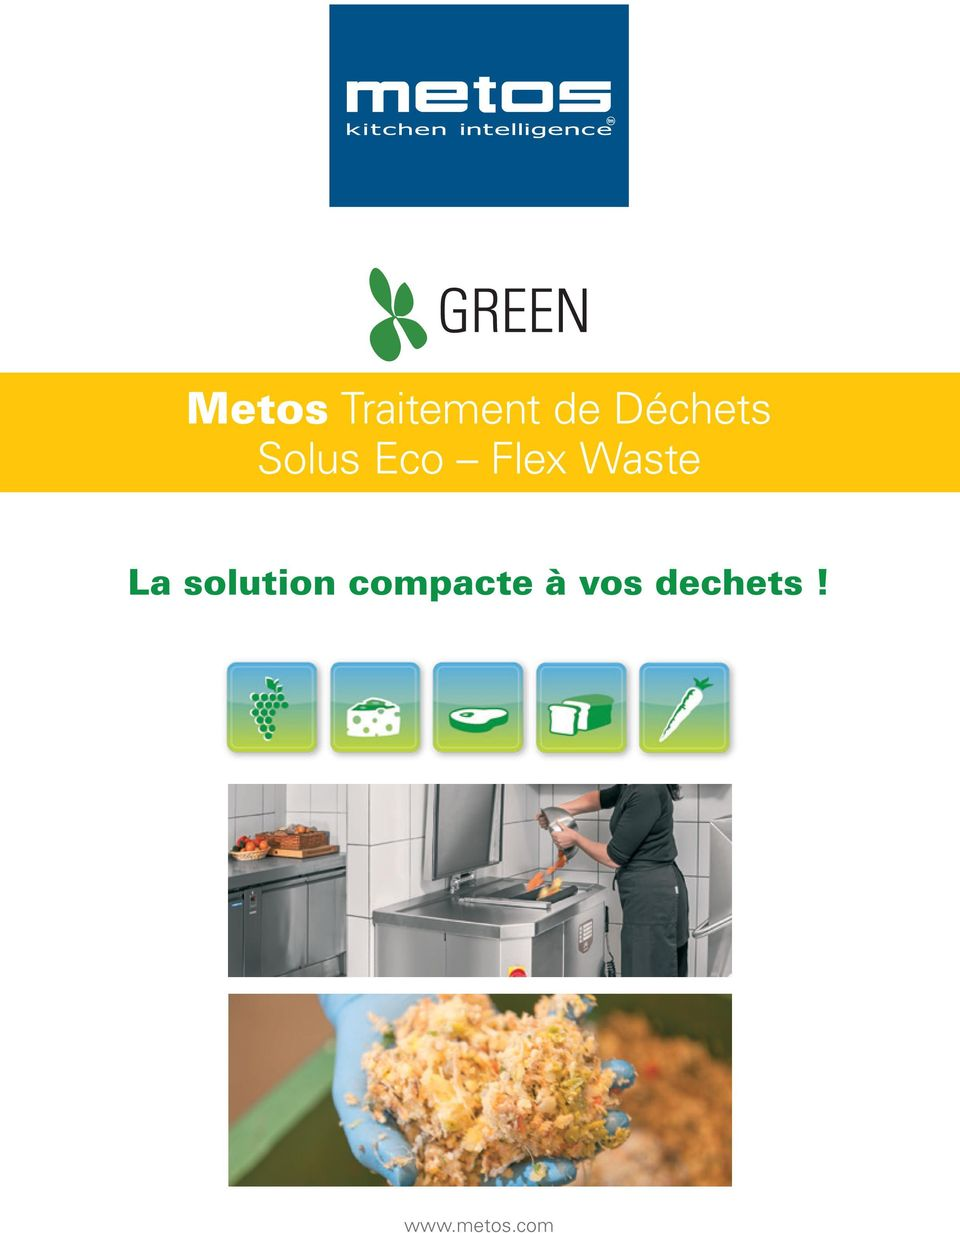 Eco Flex Waste La solution